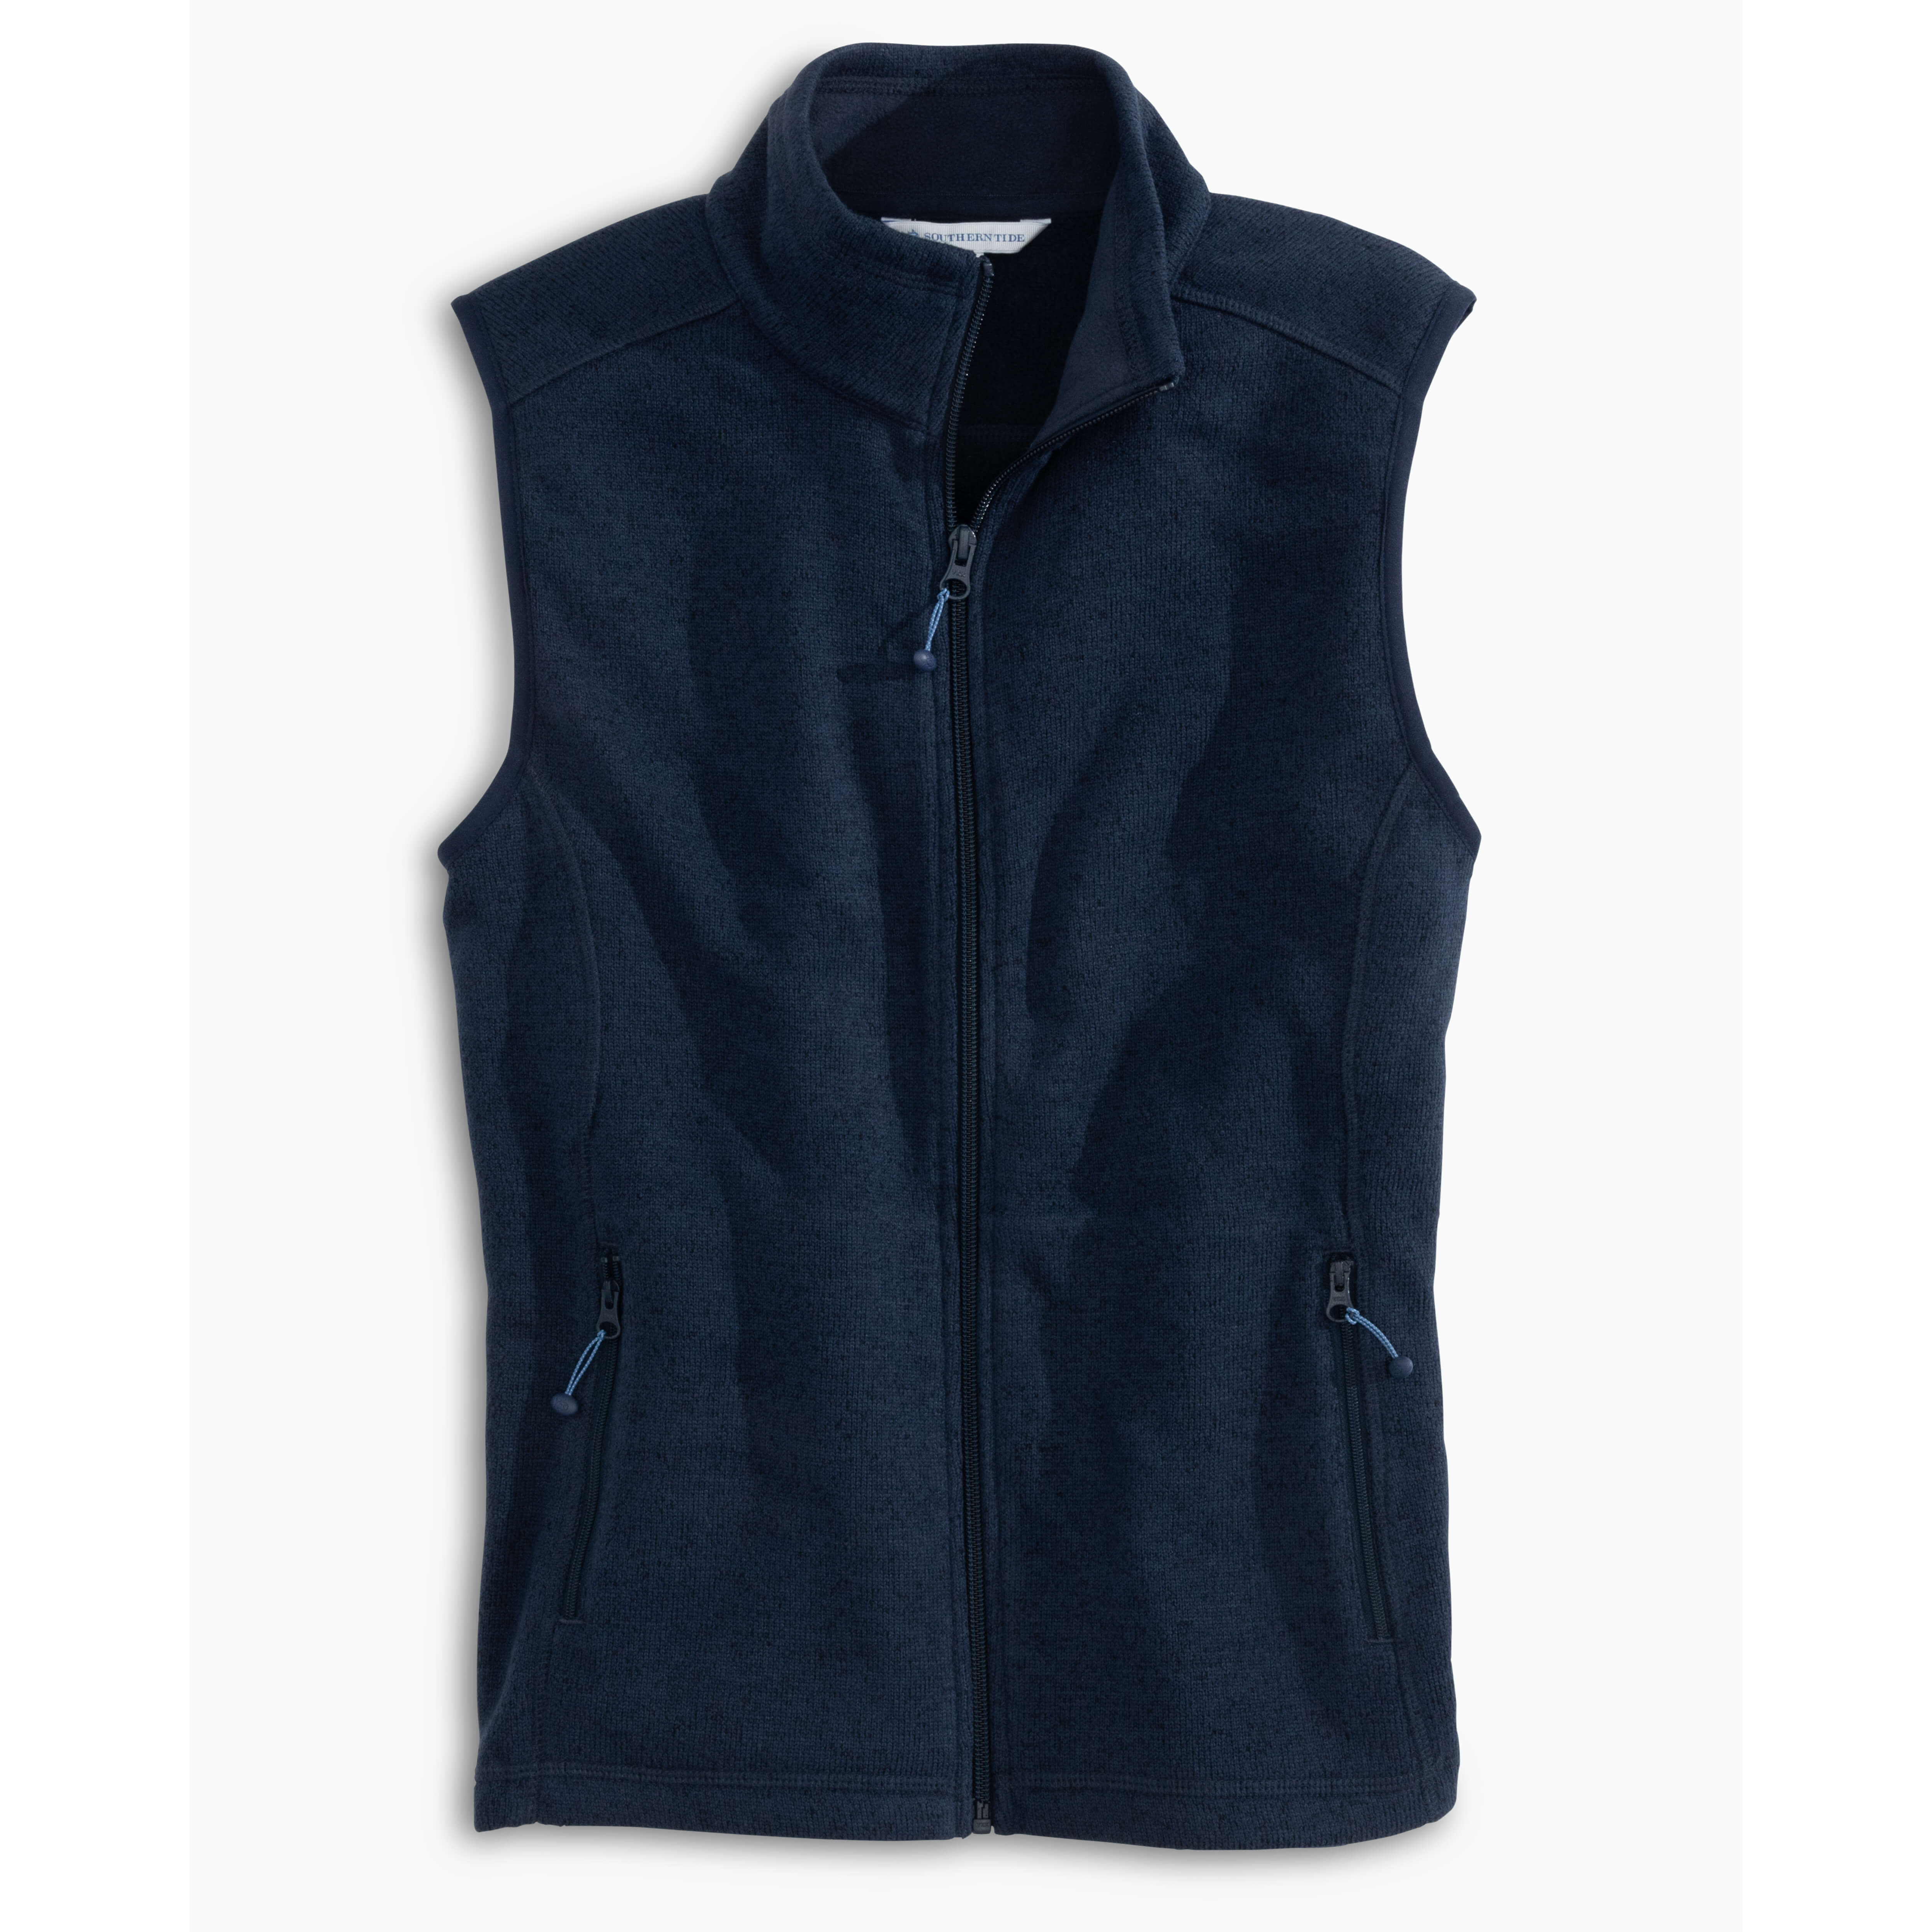 Southern Tide Women's Sweater Fleece Vest